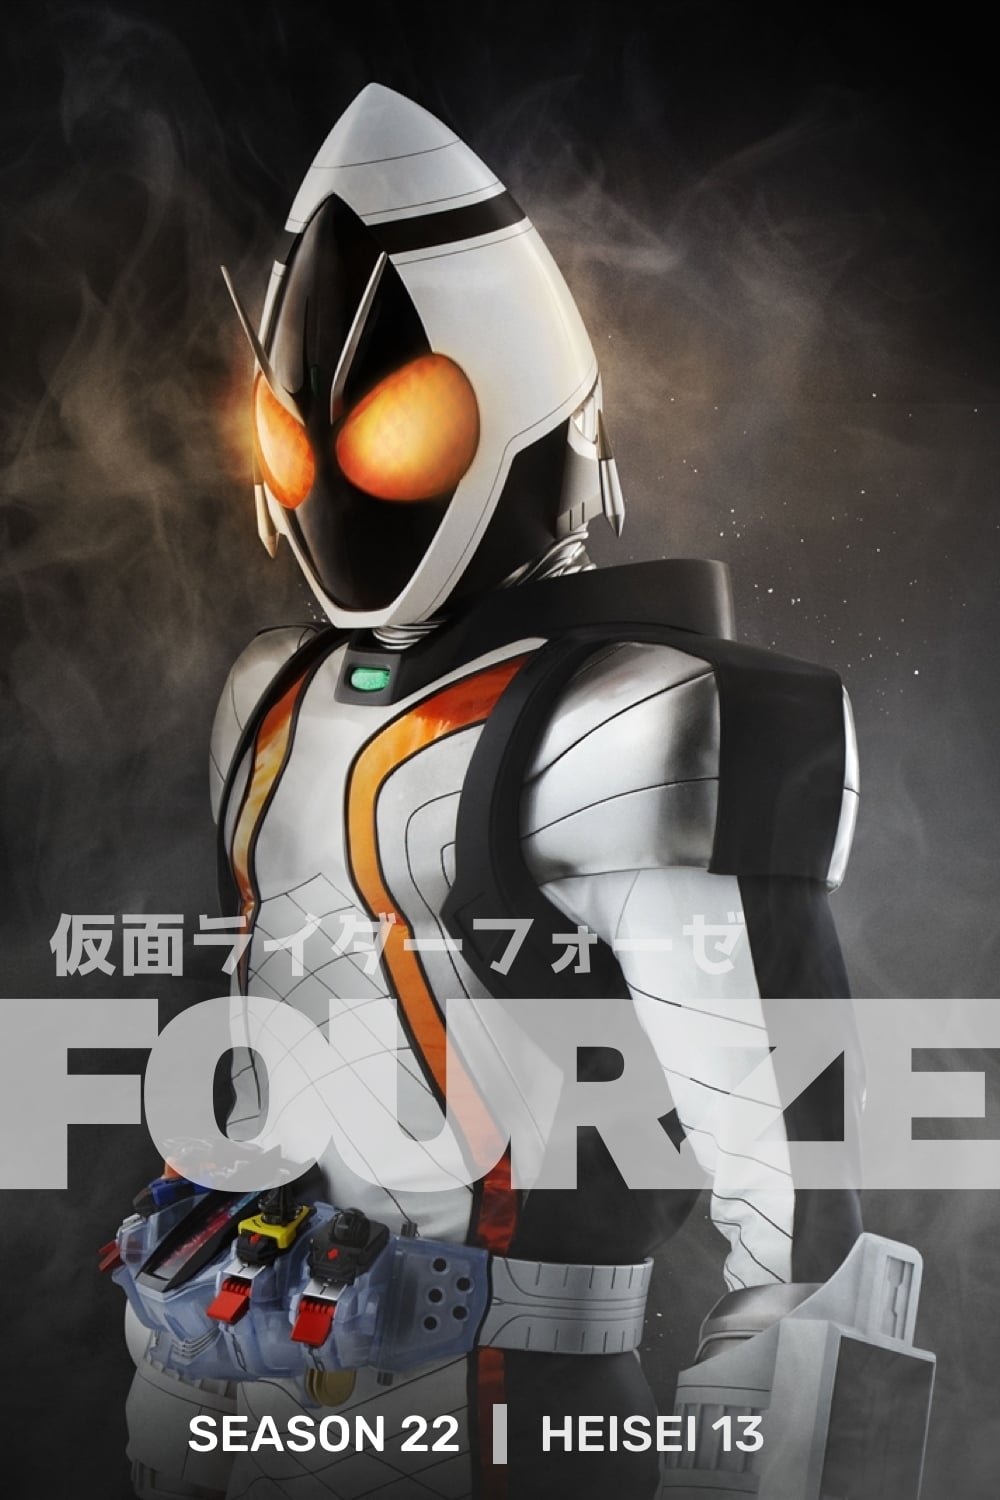 Kamen Rider - Season 21 Episode 1 : Medal, Underwear, Mysterious Arm Season 22